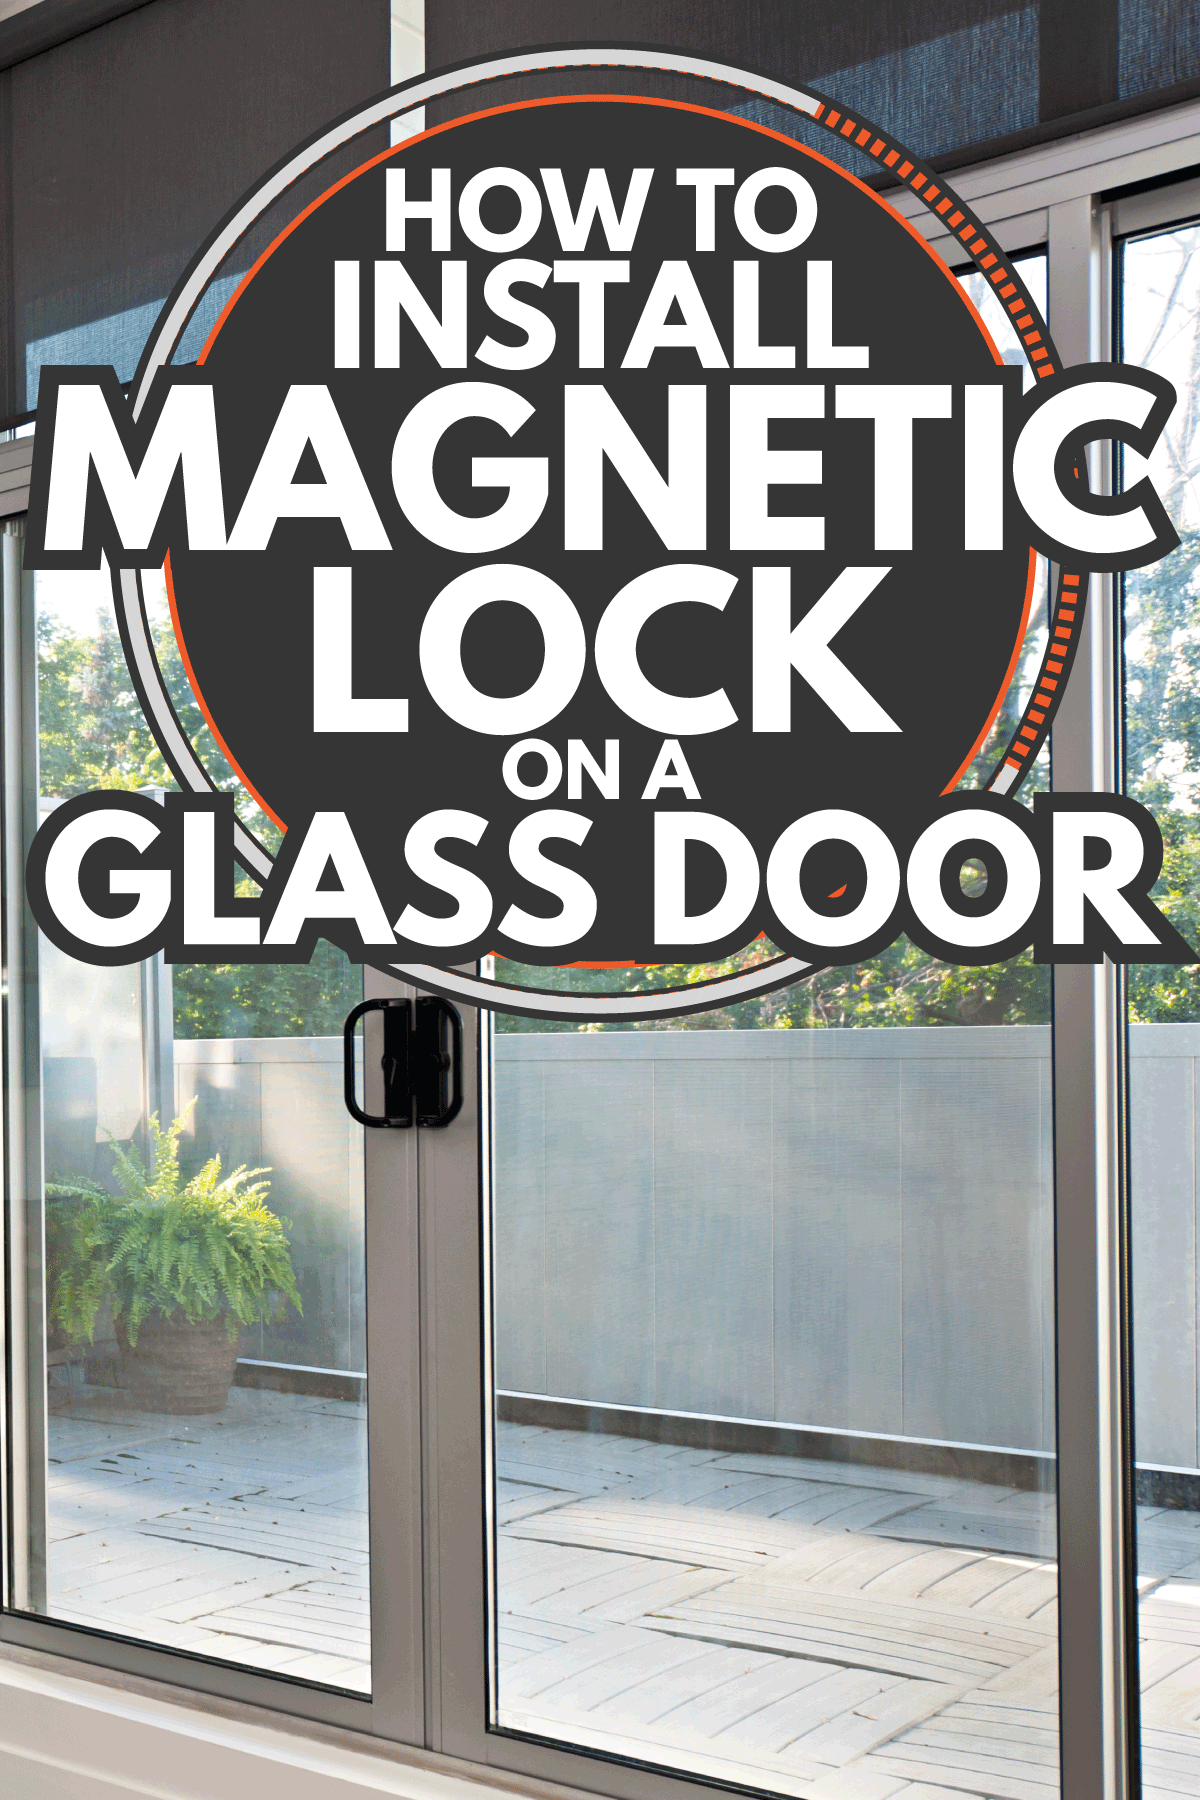 modern living room with glass door leading to open balcony. How To Install Magnetic Lock On A Glass Door